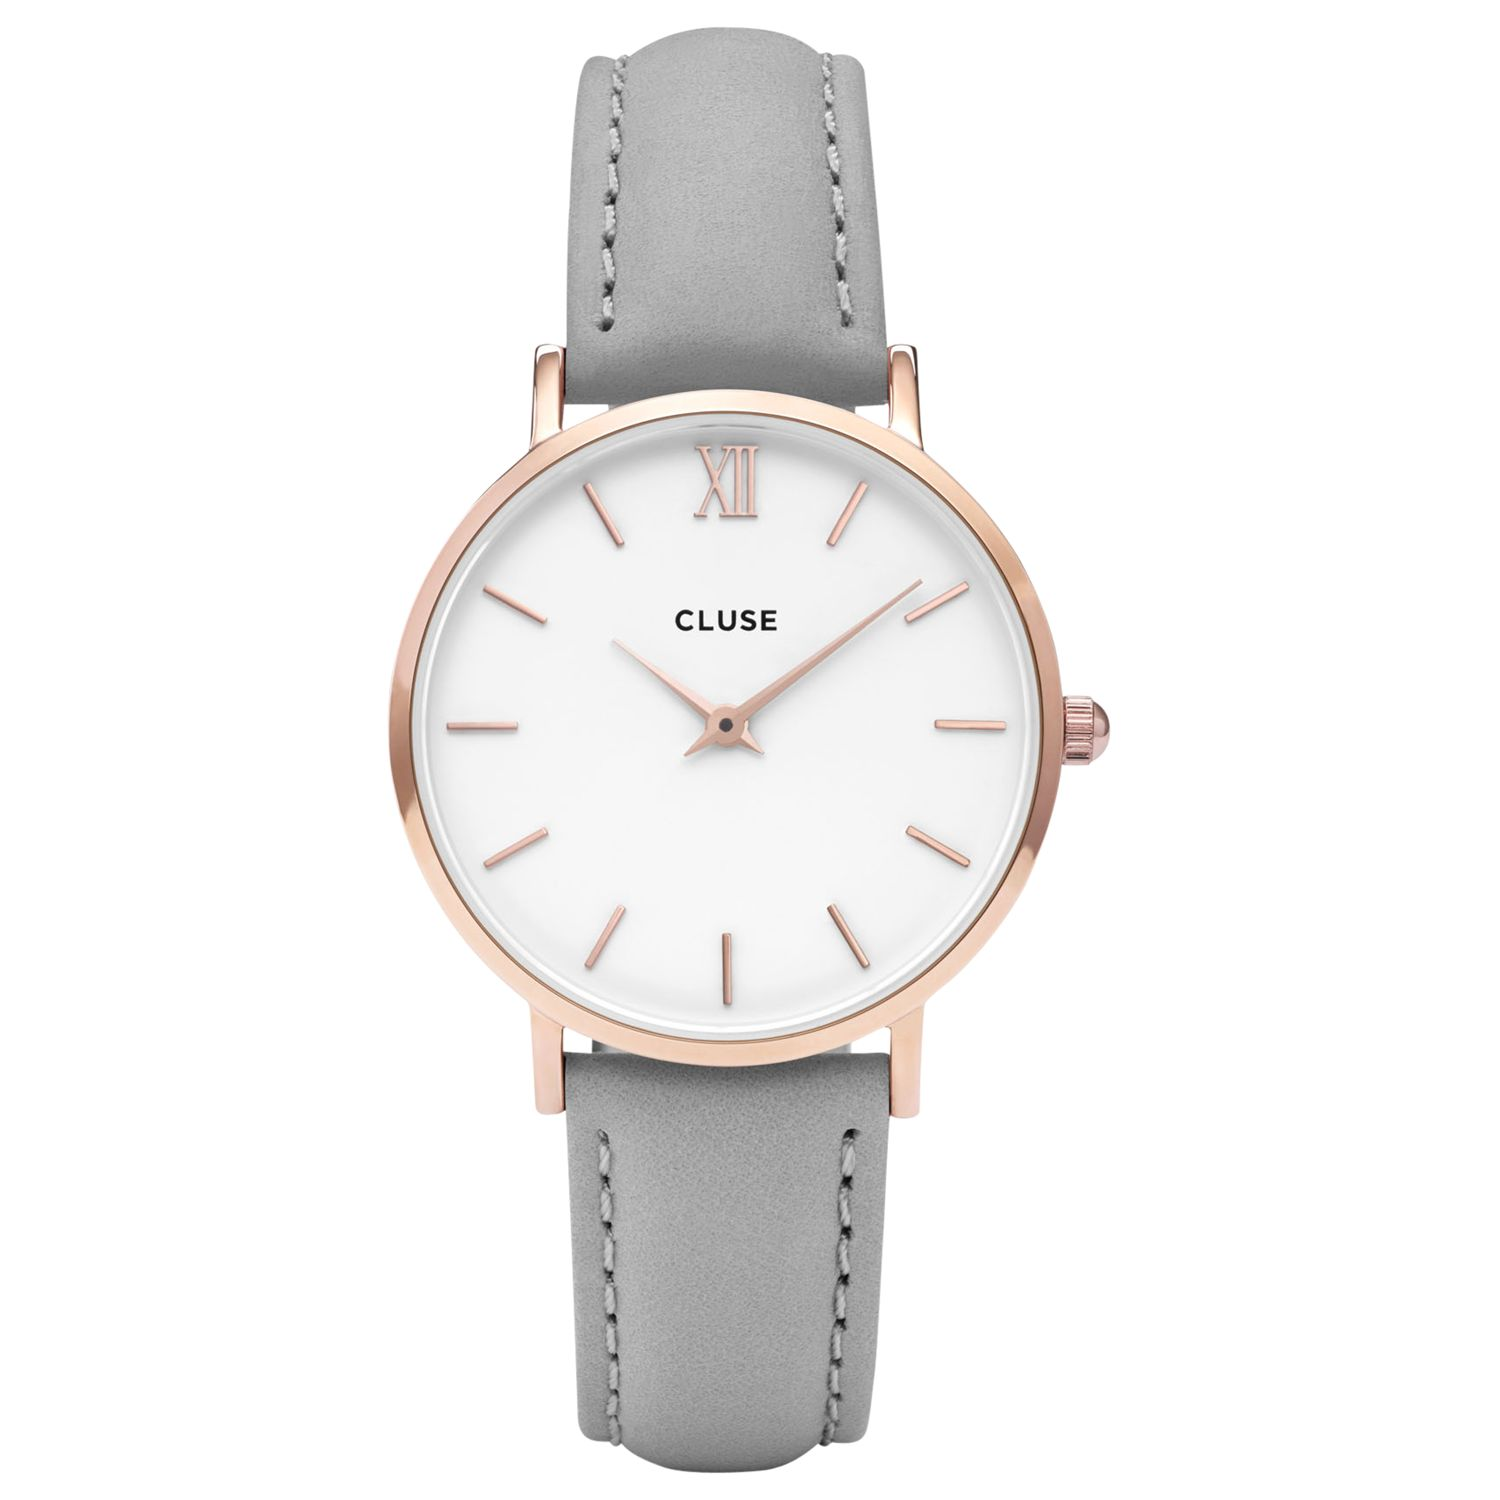 Cluse CLUSE Women's Minuit Rose Gold Leather Strap Watch